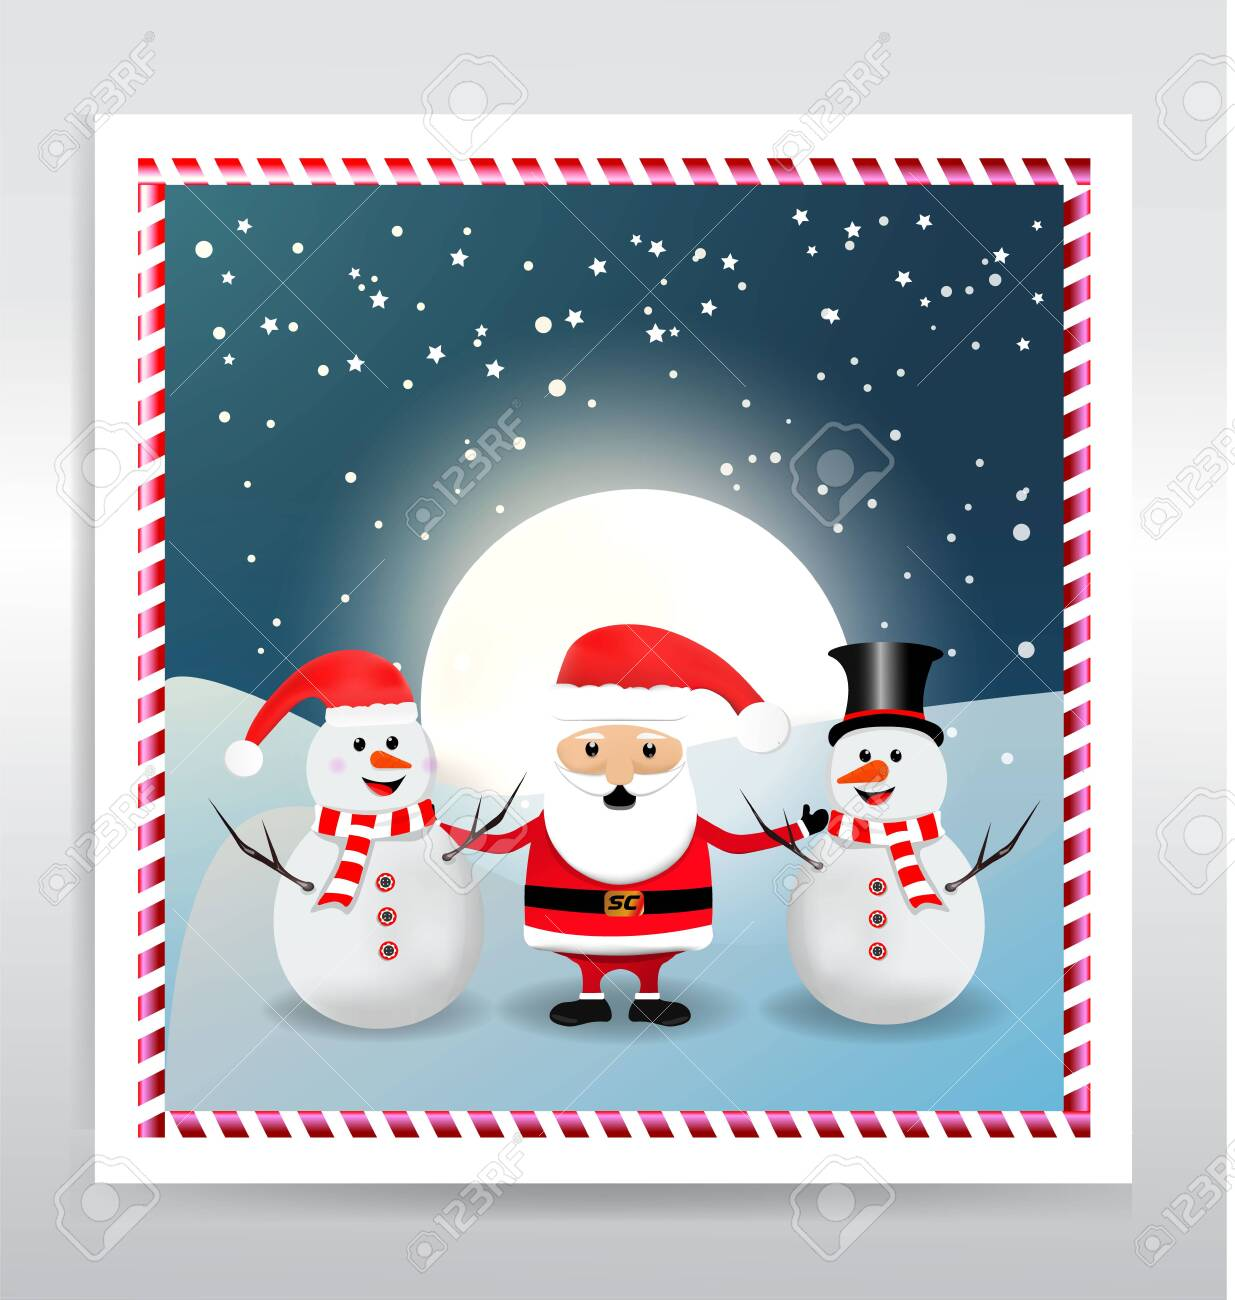 Santa Claus with snowman abstract - 134809176